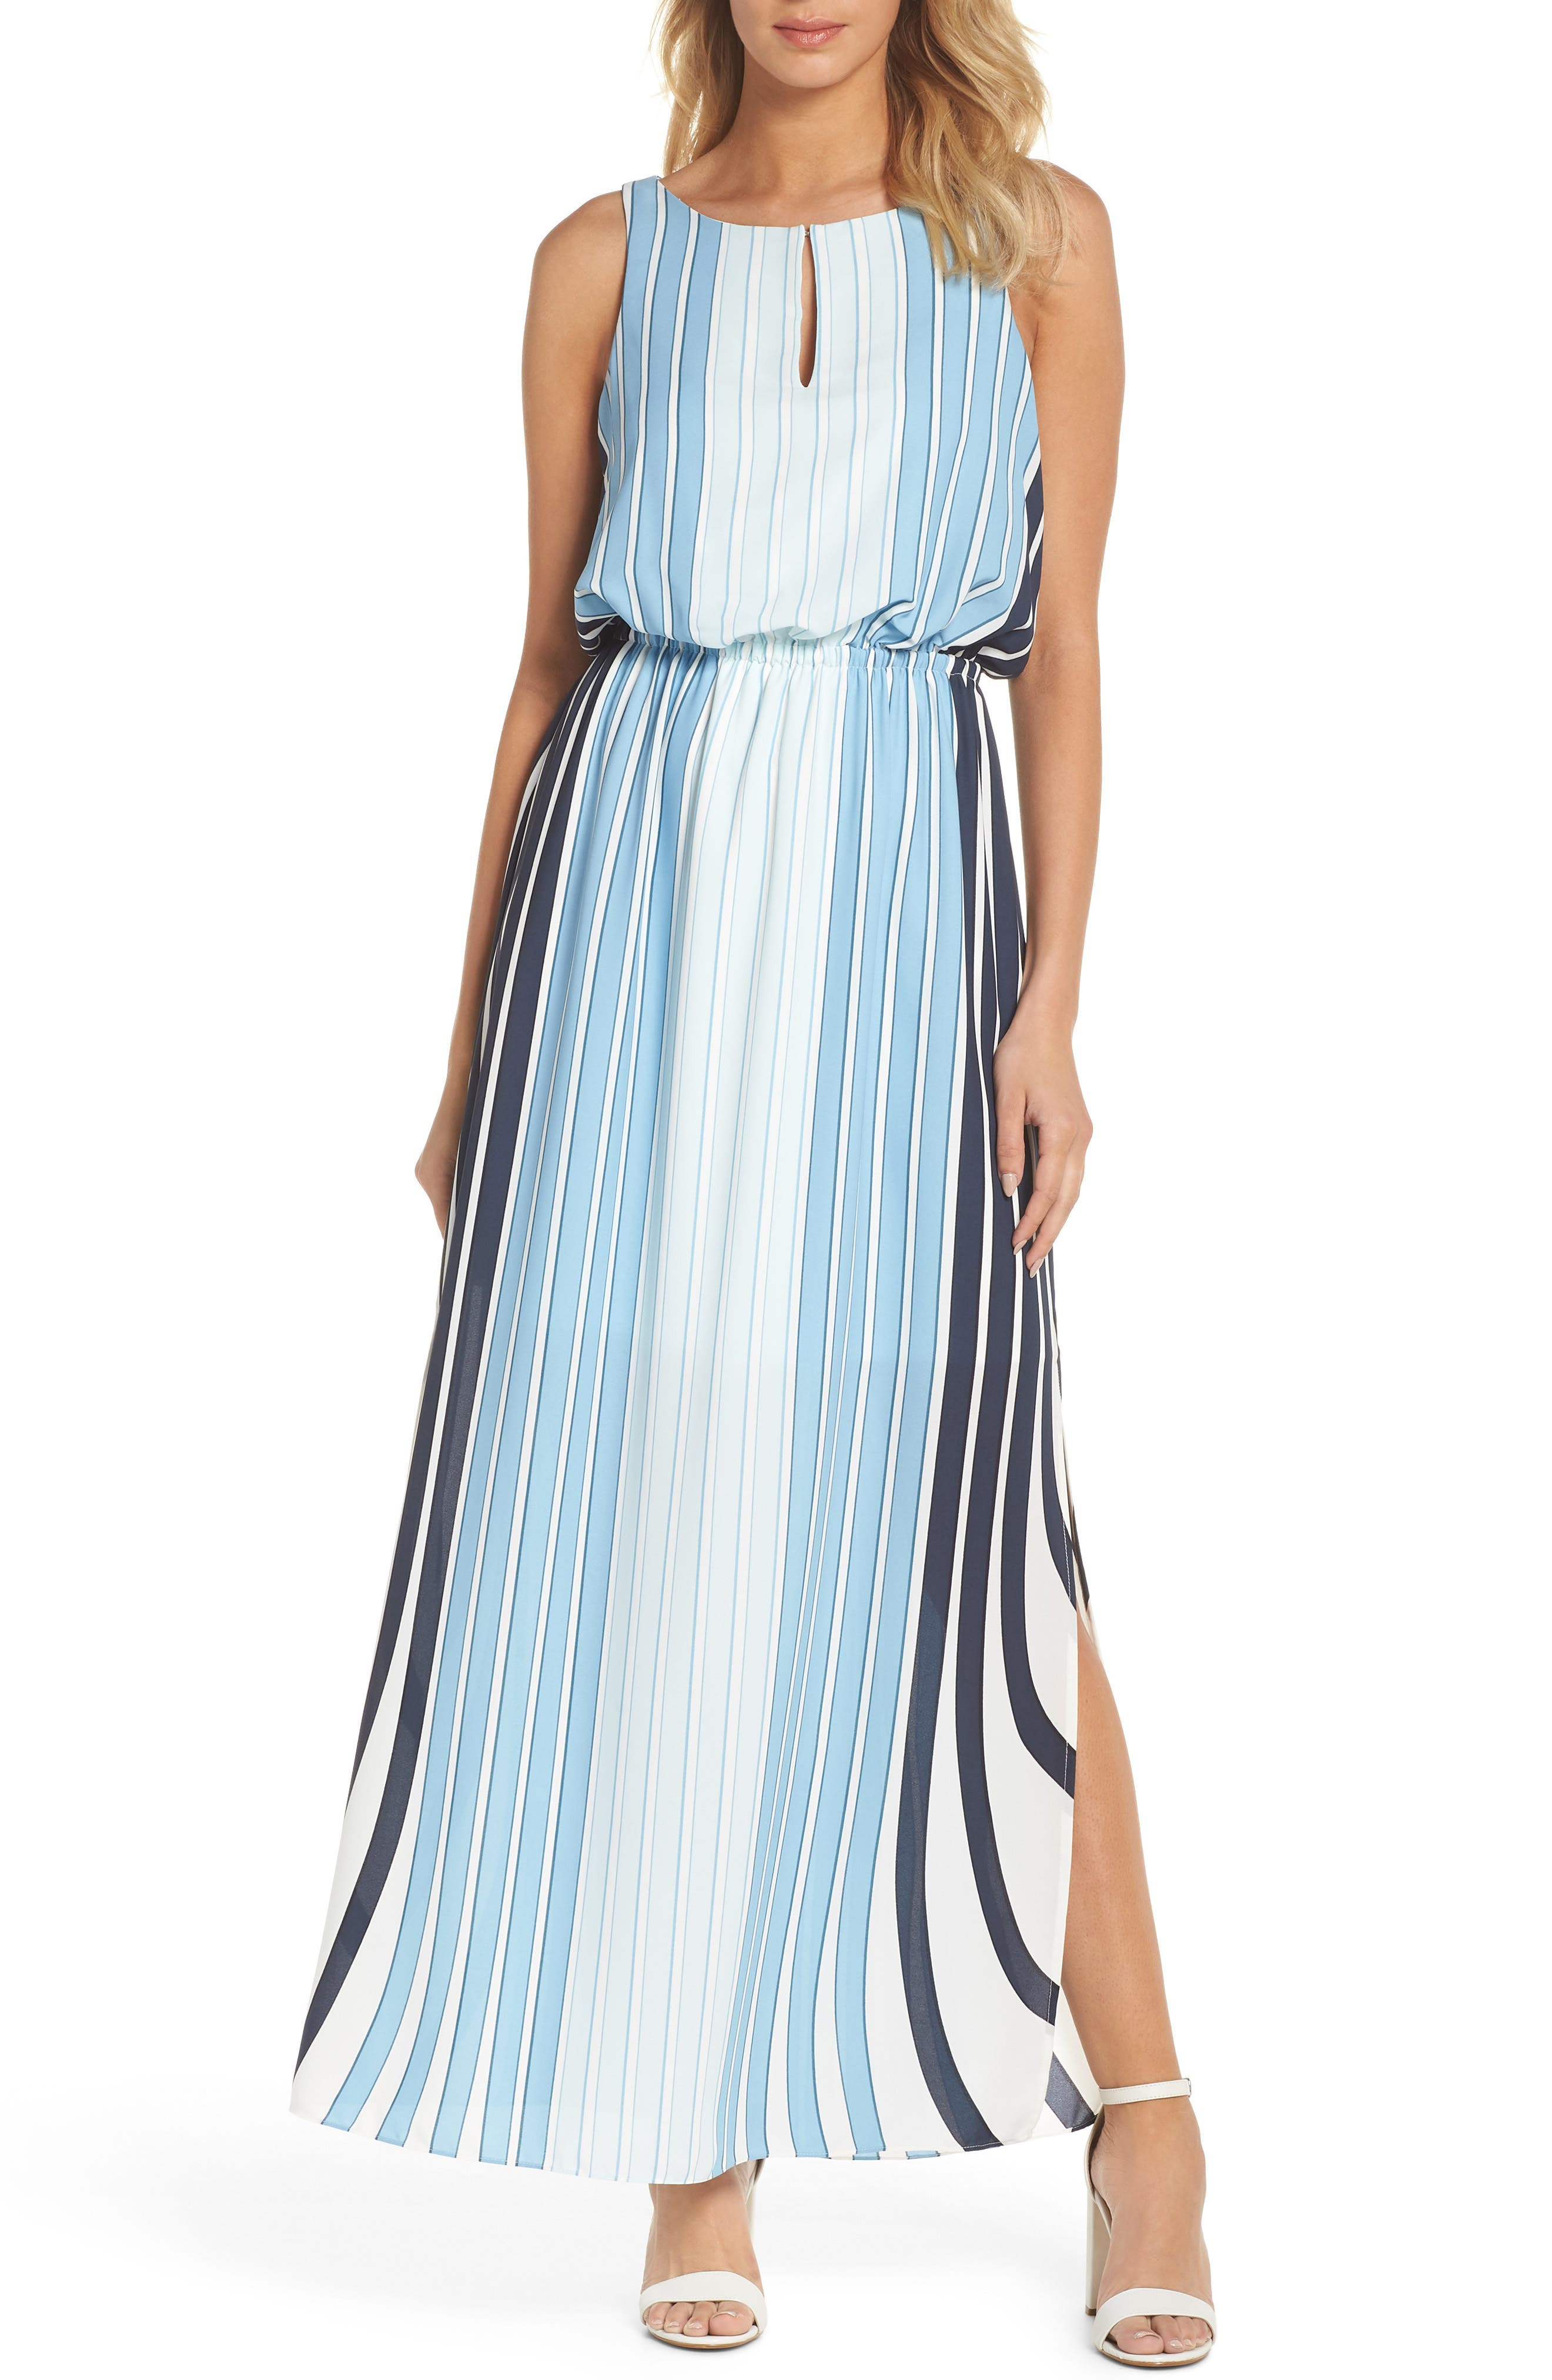 Stripe Maxi Dress,                             Main thumbnail 1, color,                             487